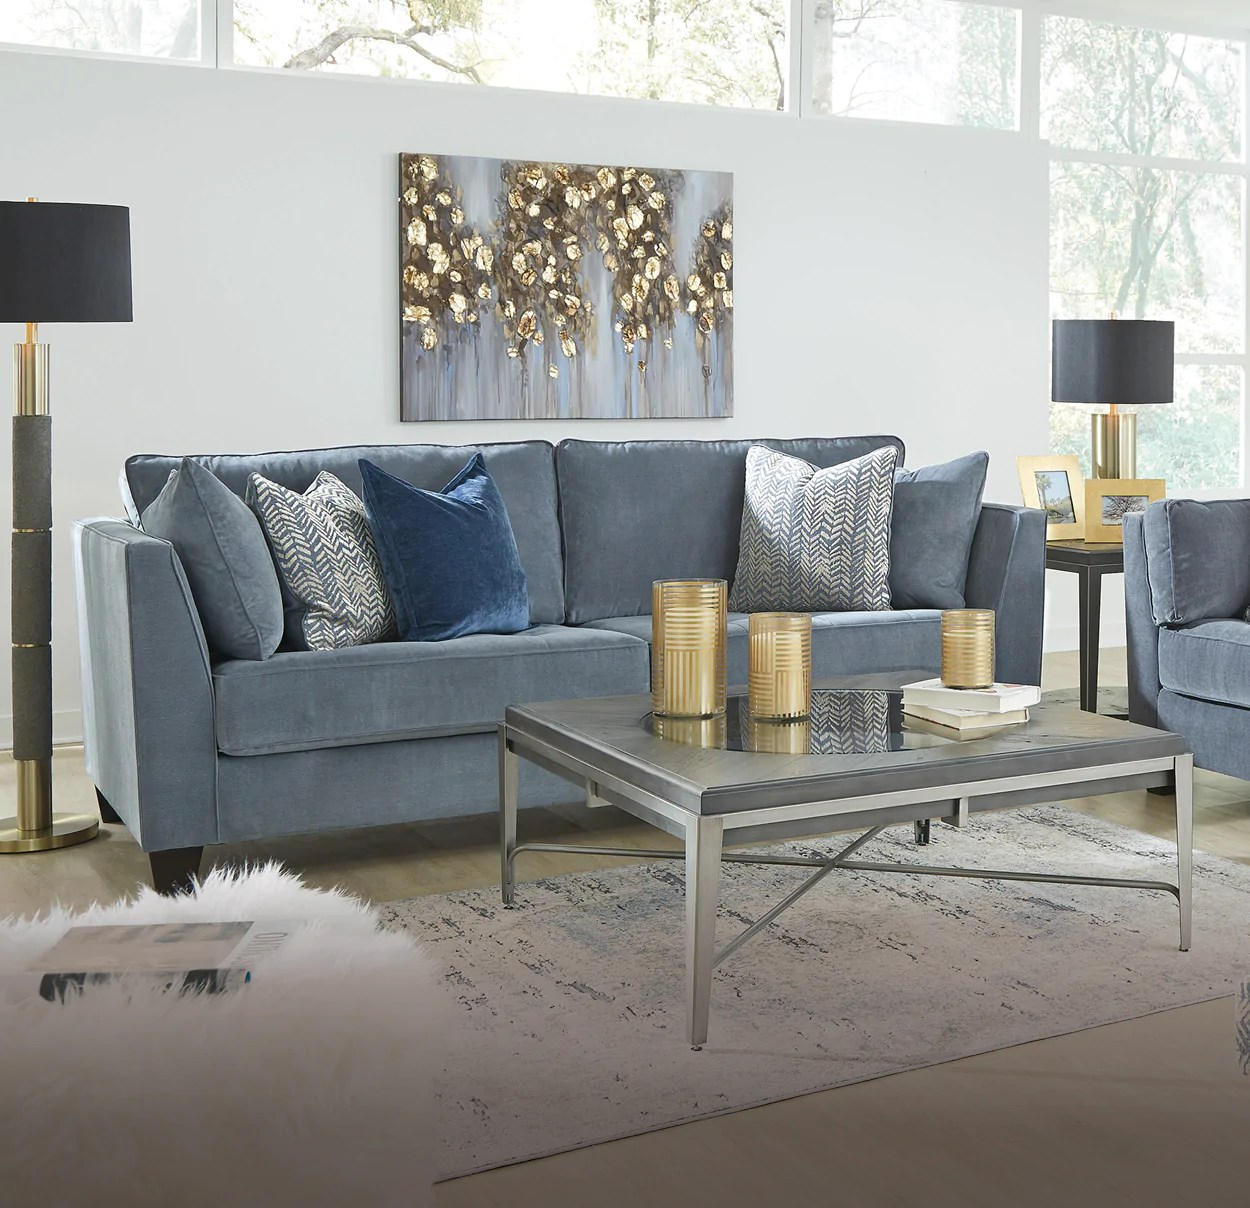 Couches Promotion Ashley Furniture Homestore Canada